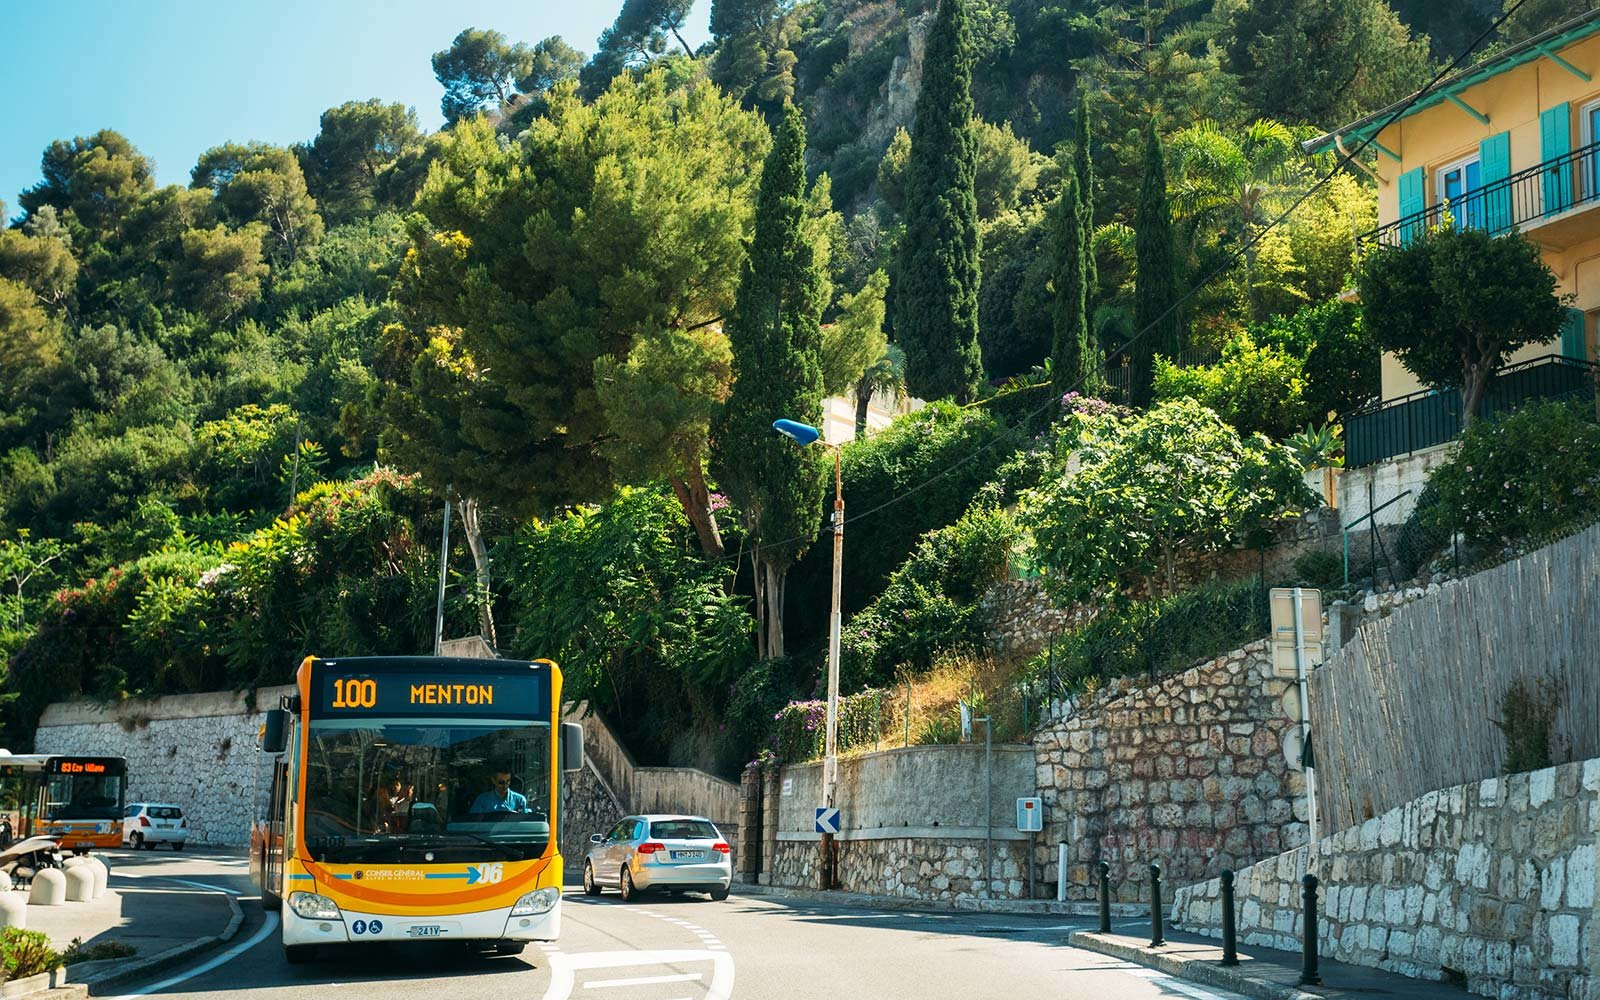 Eze France Menton public bus drivers wear skirts in summer heat